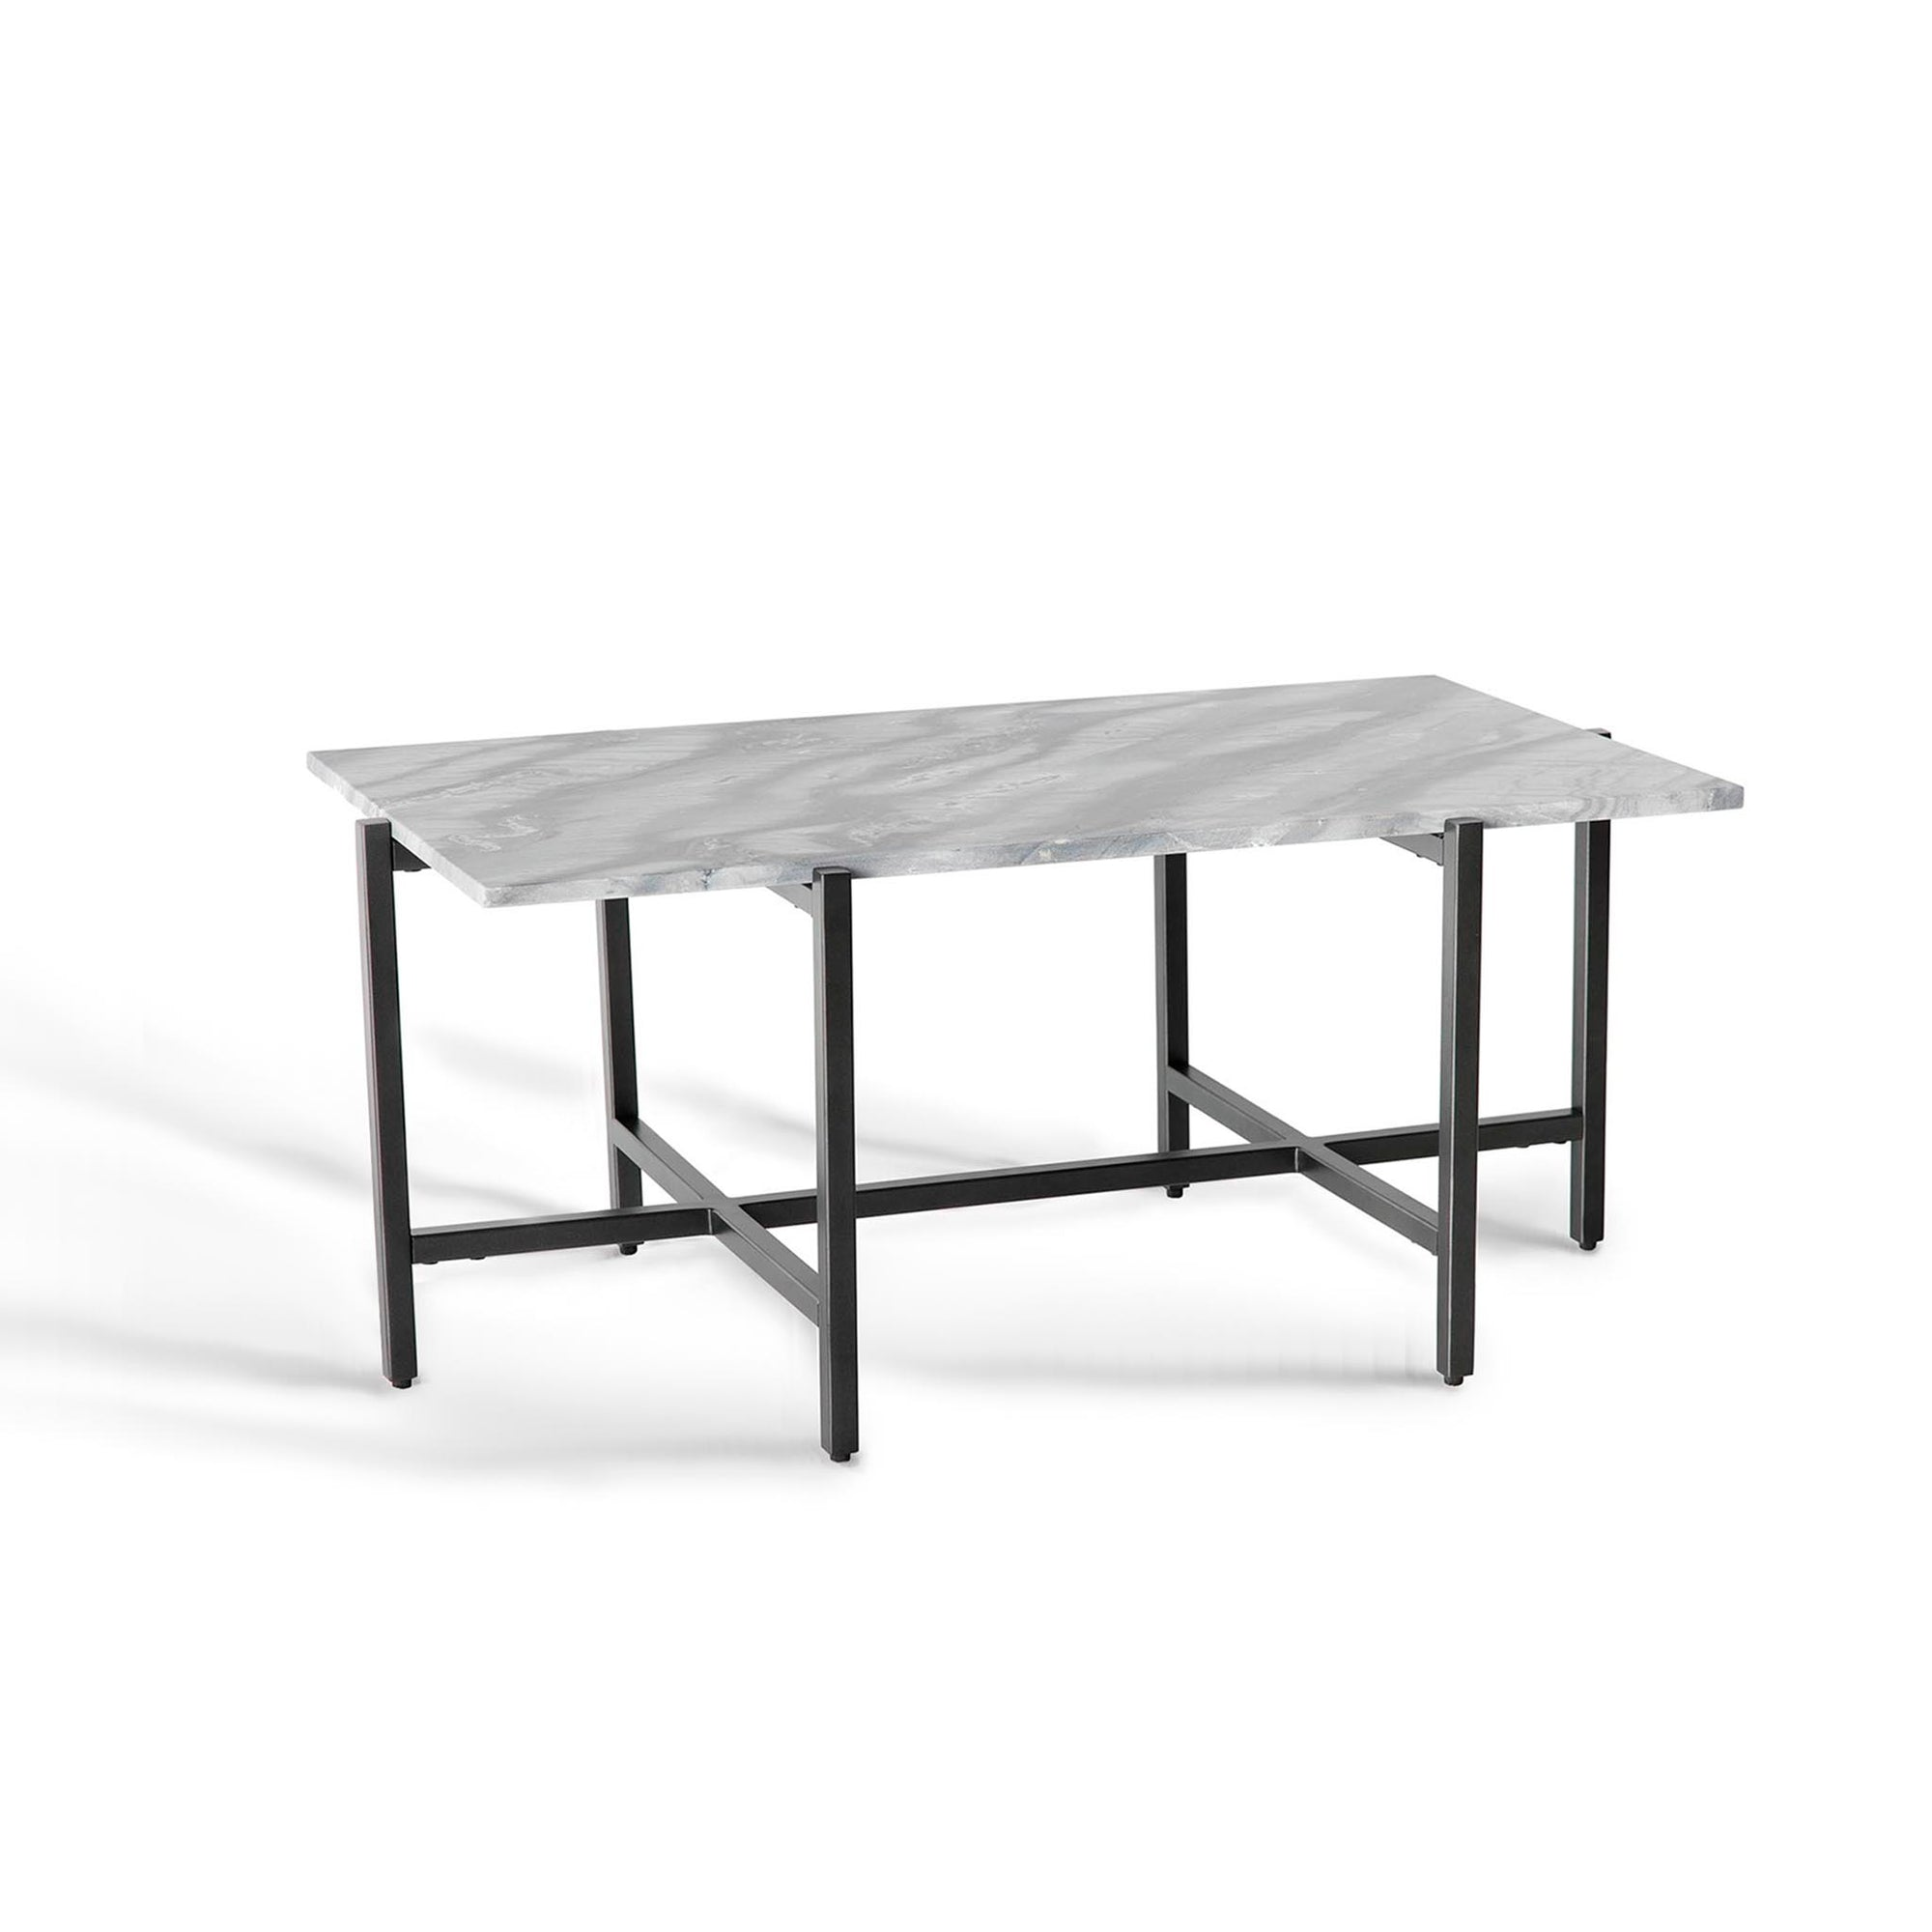 Kandla Grey Marble Top Coffee Table with Grey Metal Legs by Roseland Furniture